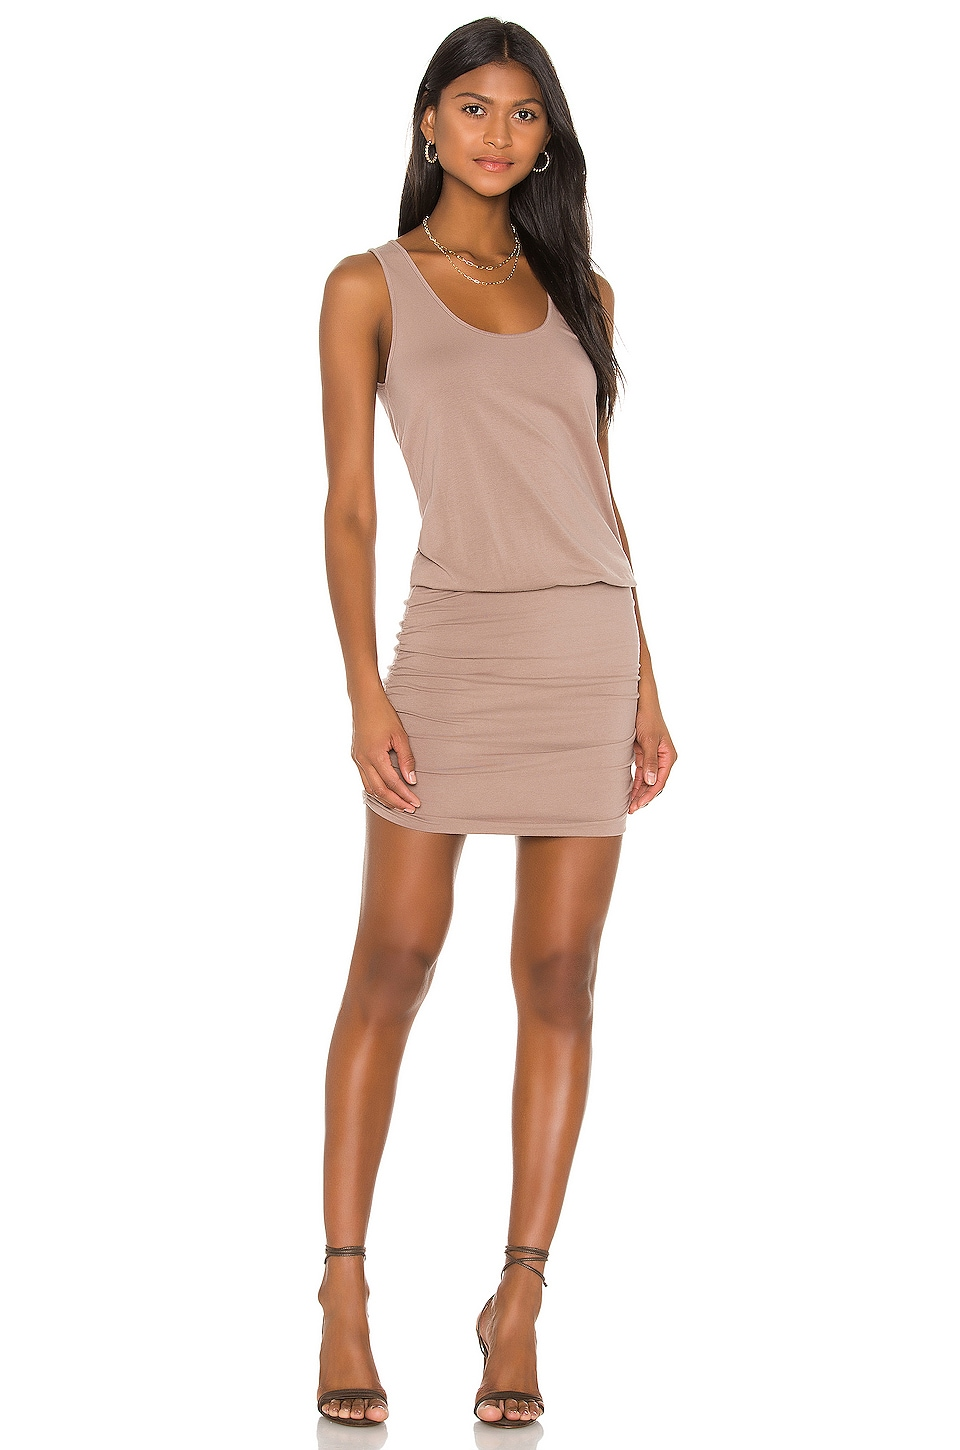 Draped Modal Jersey Mini Dress             Bobi                                                                                                       CA$ 90.97 7